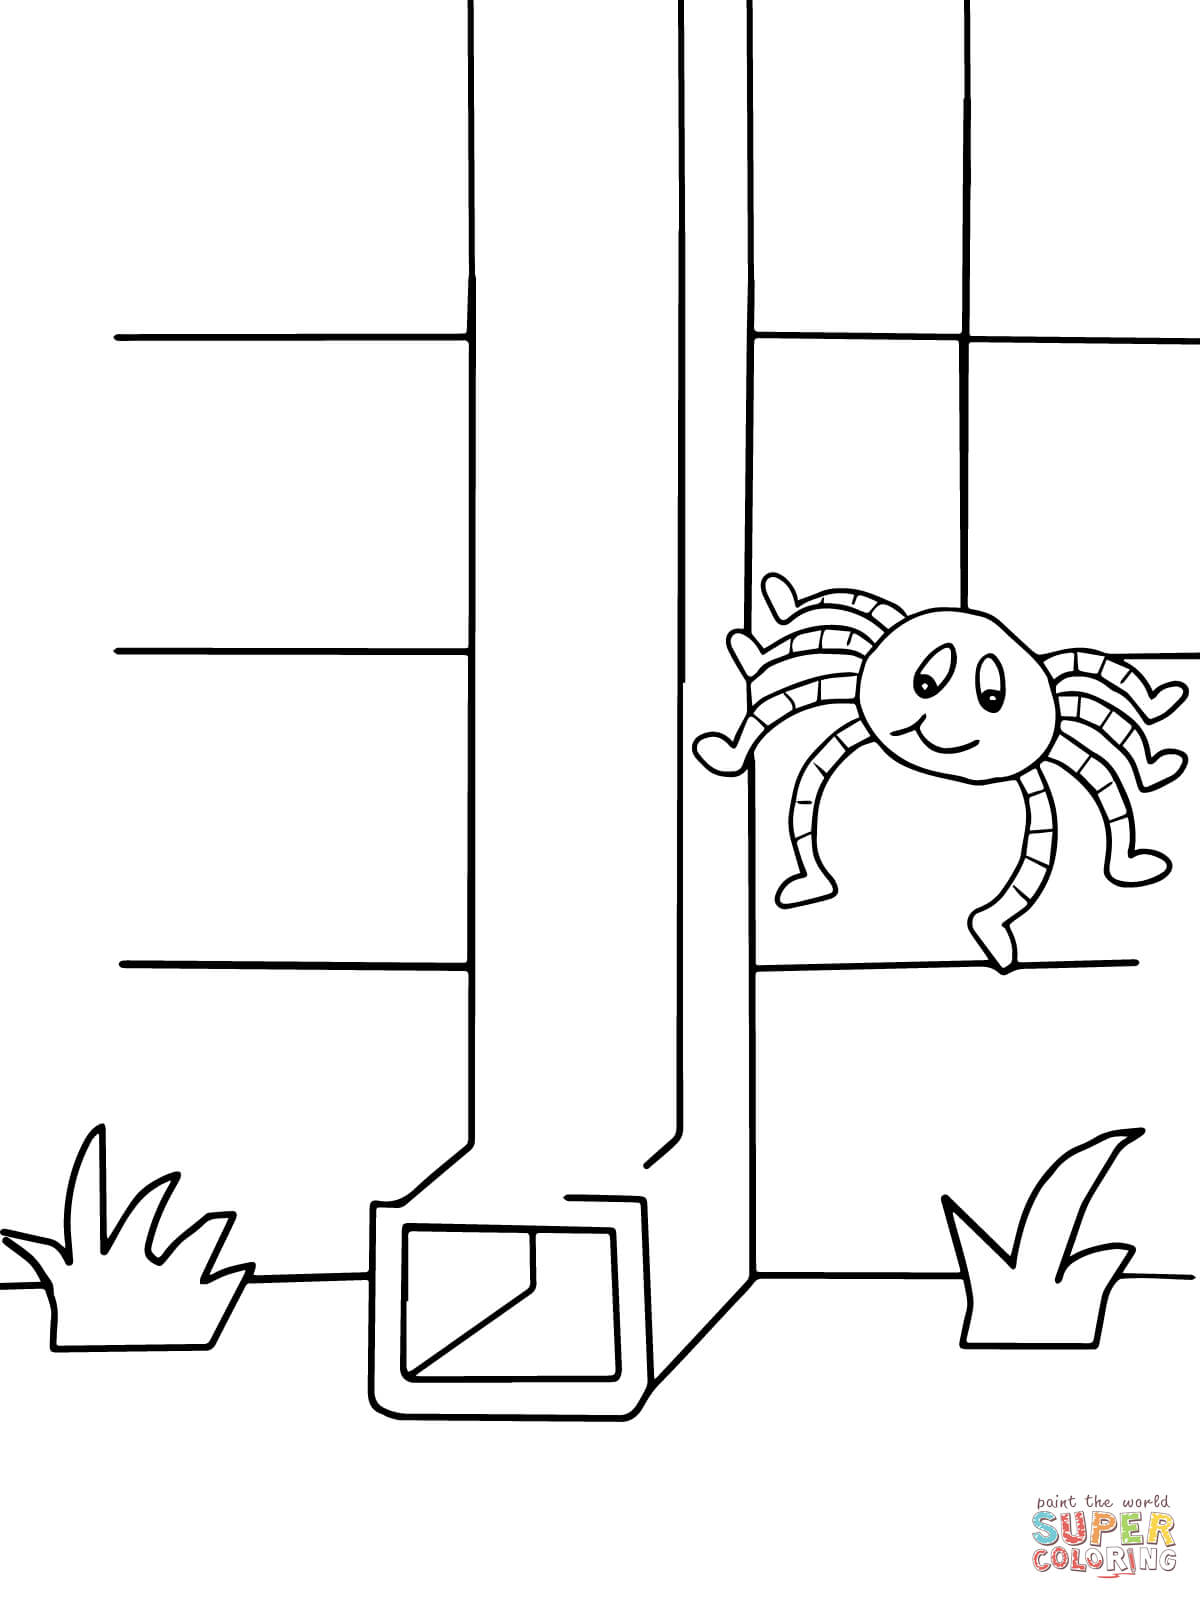 incy wincy spider colouring pages incy wincy spider coloring page twisty noodle spider colouring wincy incy pages